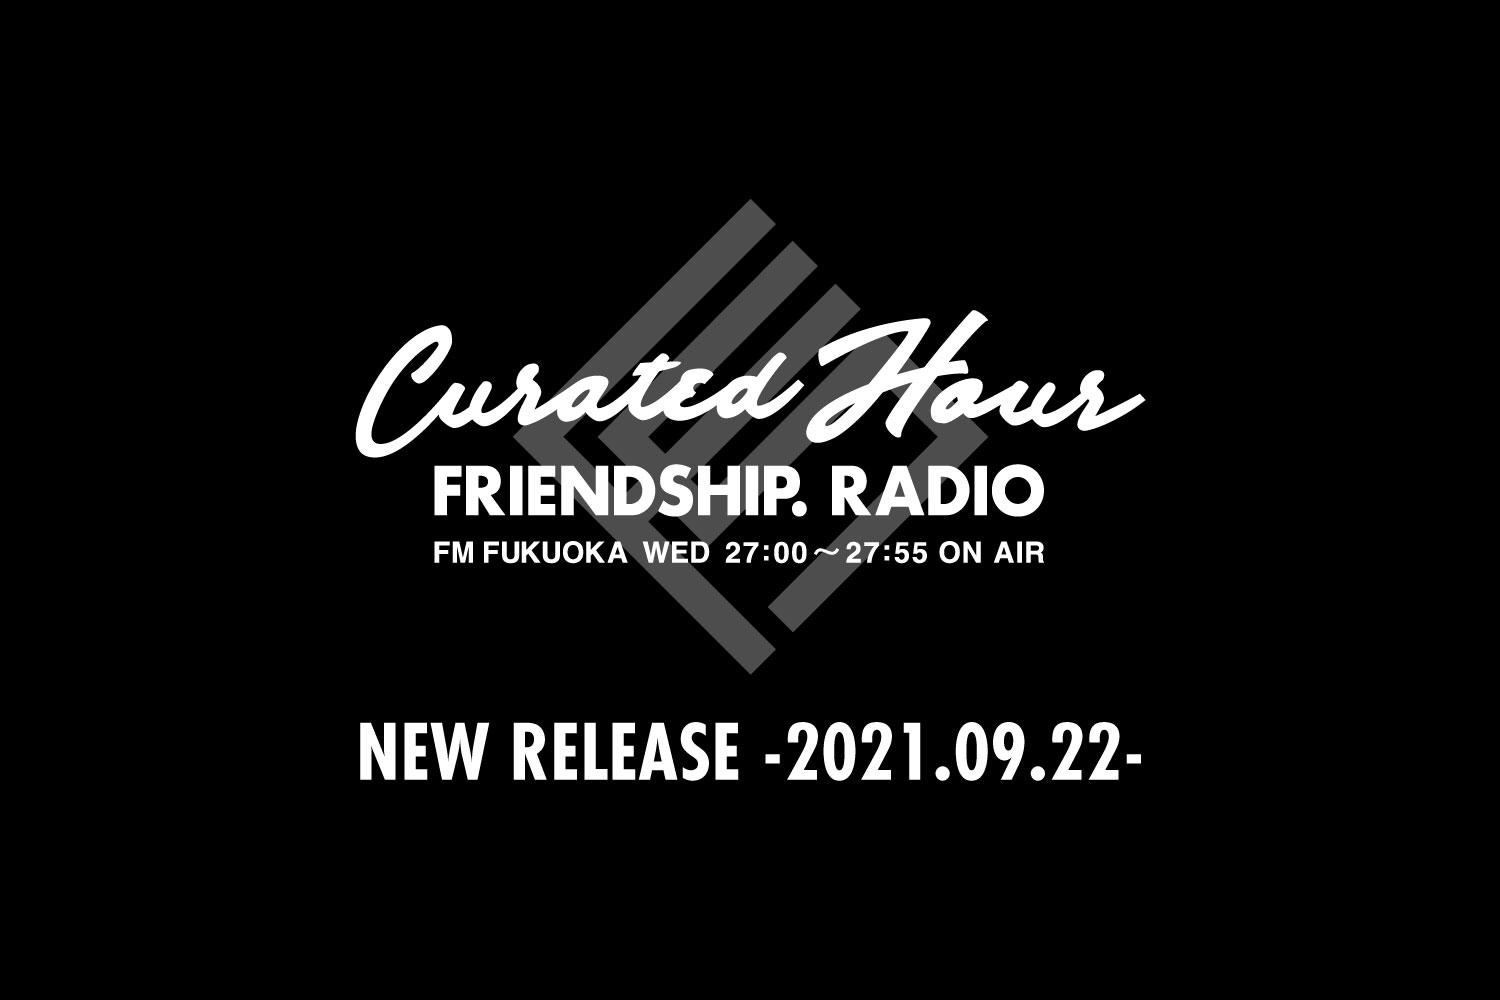 FRIENDSHIP.の最新楽曲を紹介!miida and The Department・江沼郁弥・The Wisely Brothersほか全19作品 -2021.09.22-